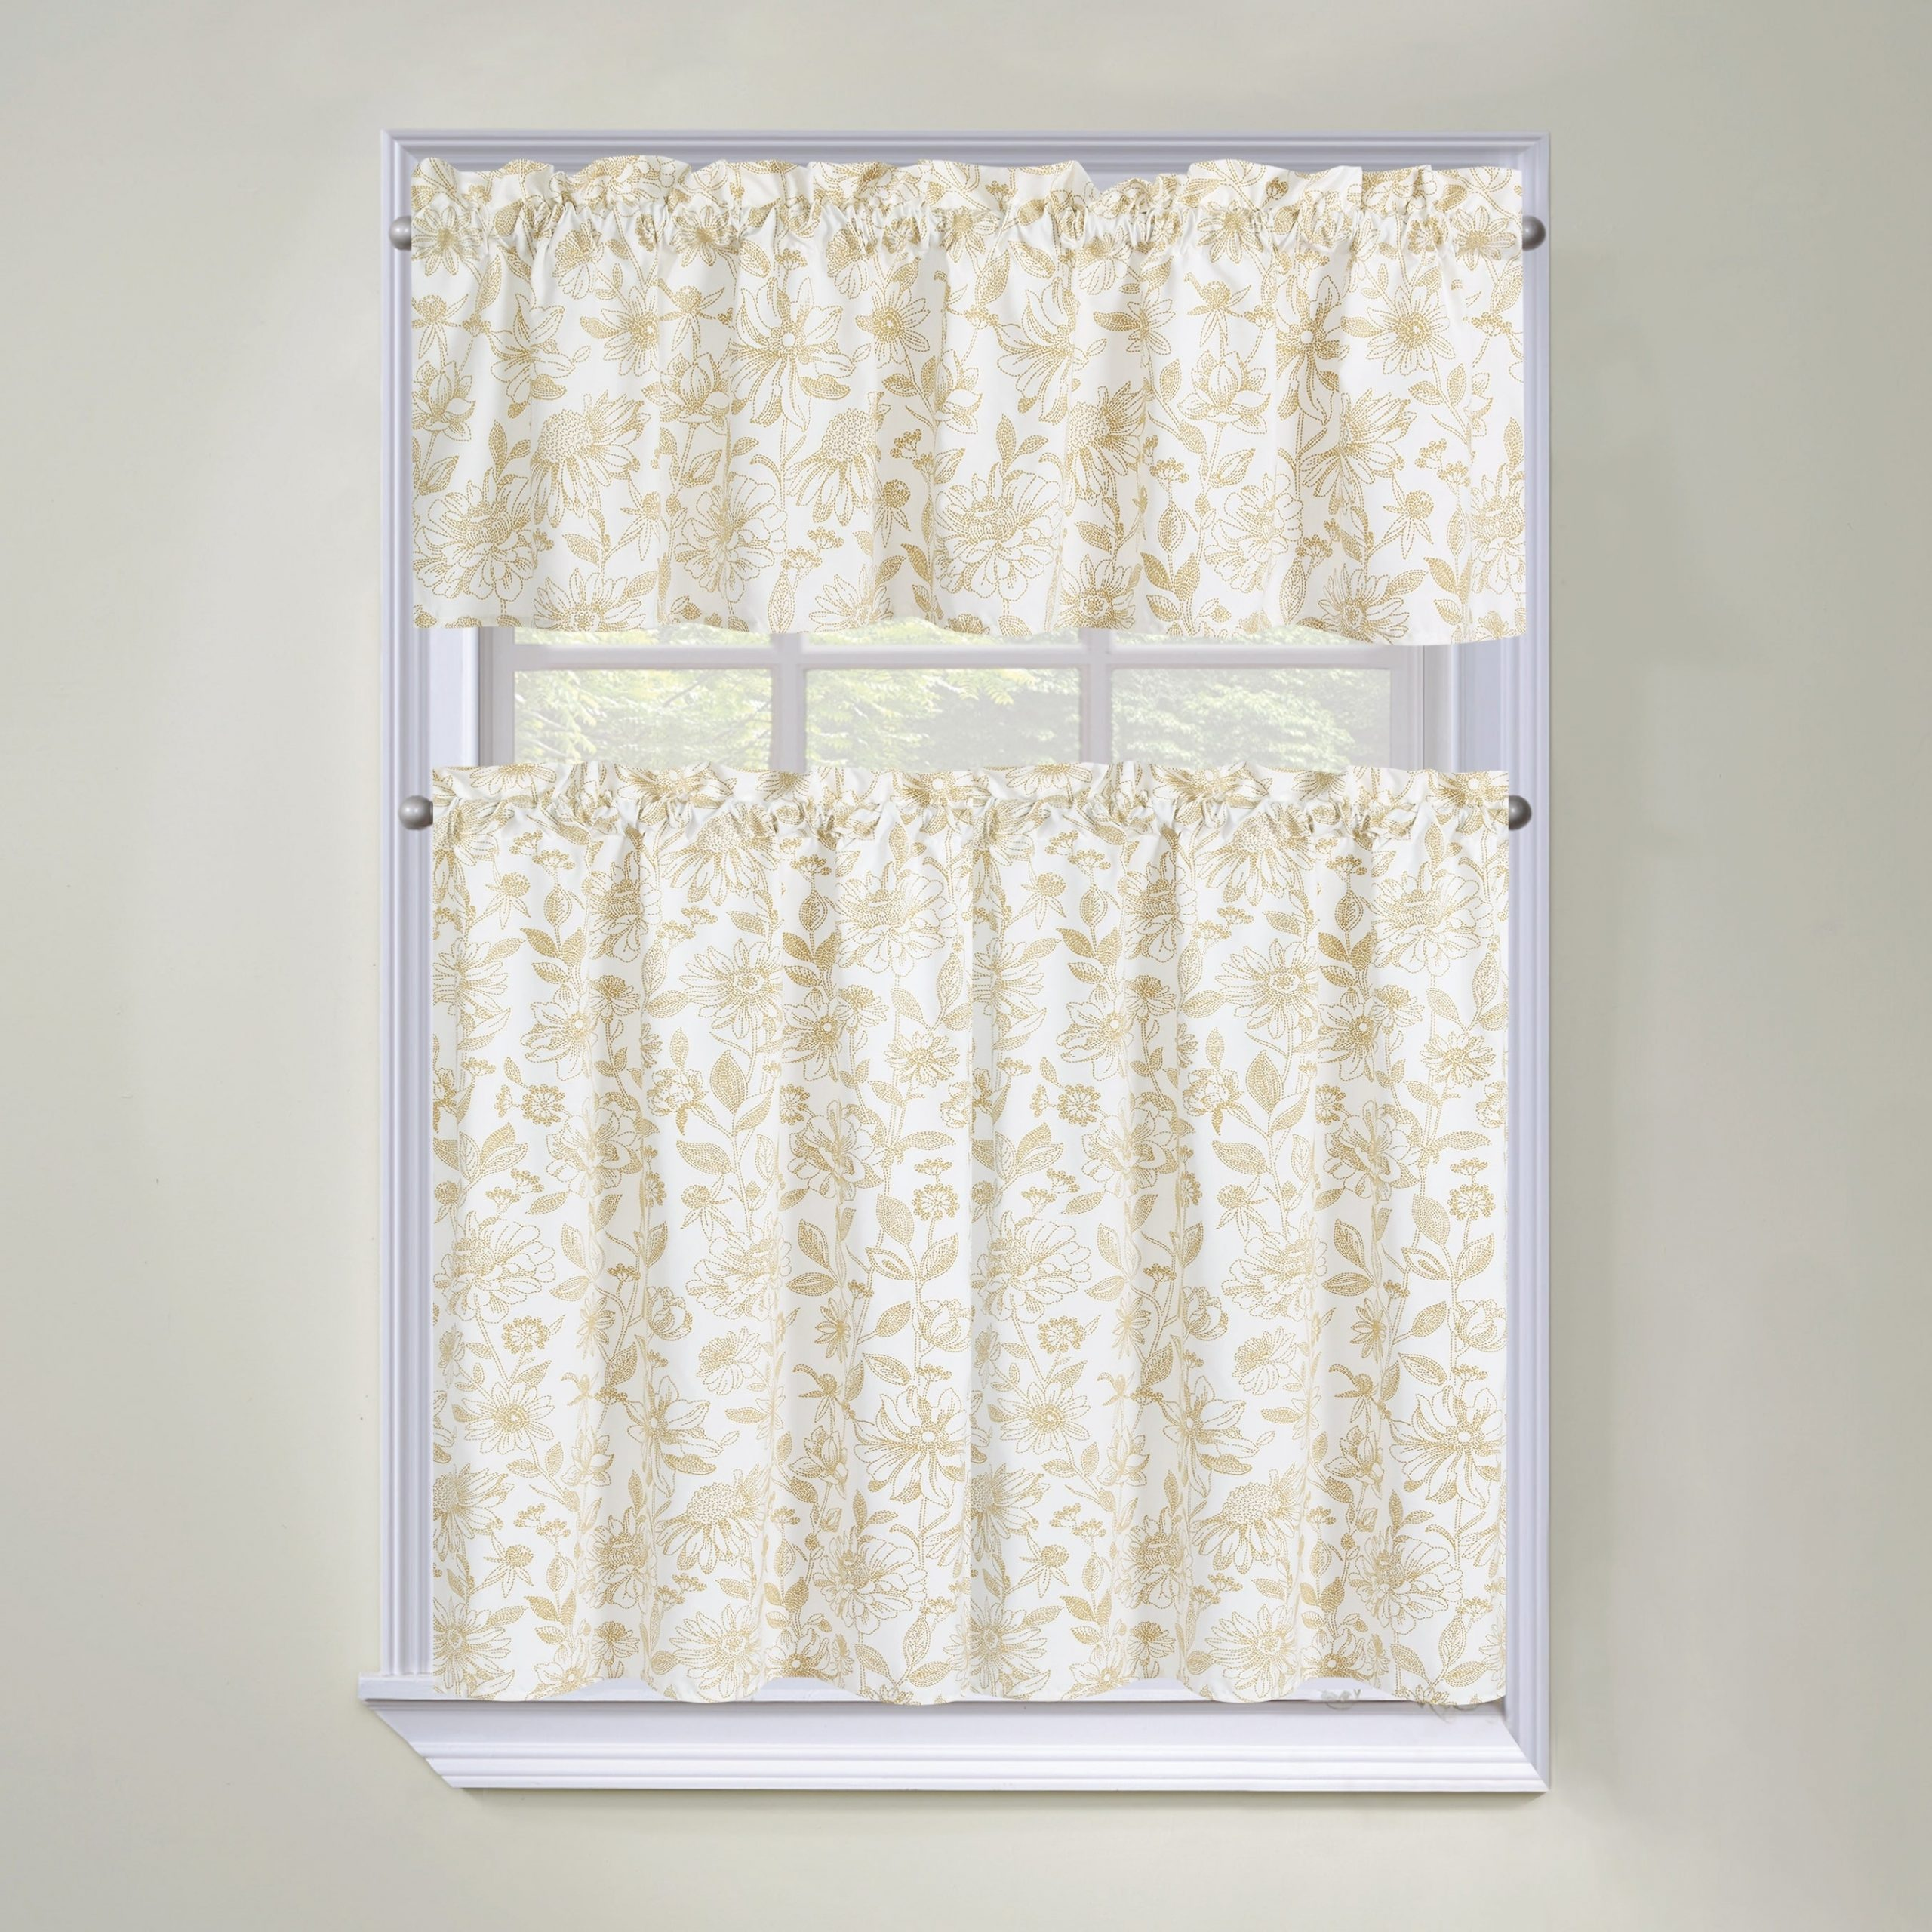 Regal Home Collections Amelia Floral 3 Piece Tier Curtain And Valance Set –  60 W X36 L Inches Within Seabreeze 36 Inch Tier Pairs In Ocean (Gallery 8 of 20)